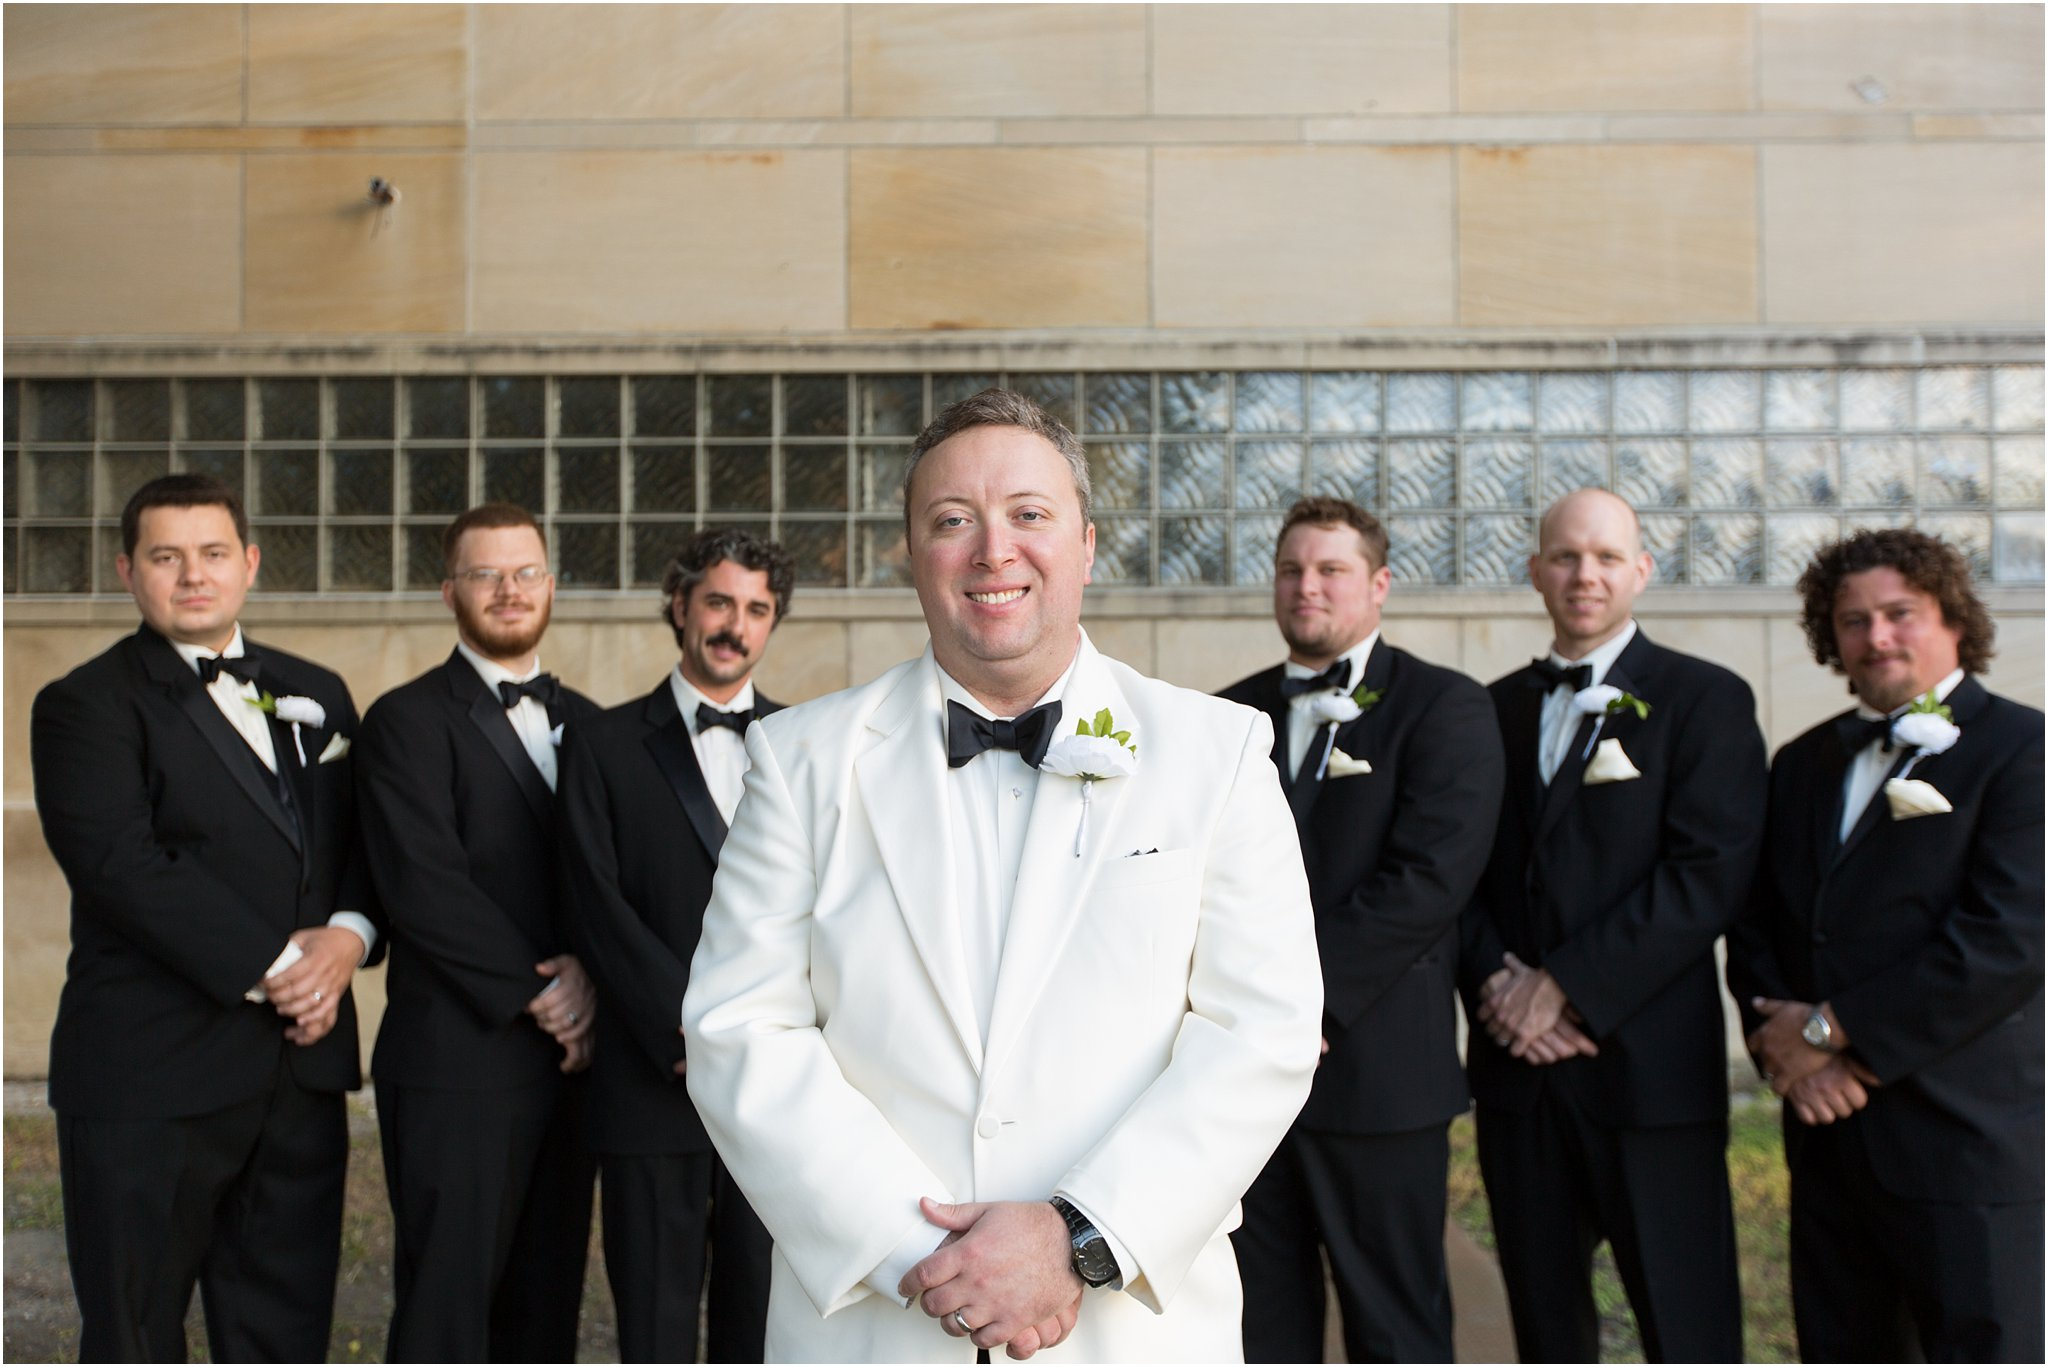 va_jessica_ryan_photography_virginia_wedding_norfolk_harrison_opera_house_norfolk_arts_district_portraits_3797